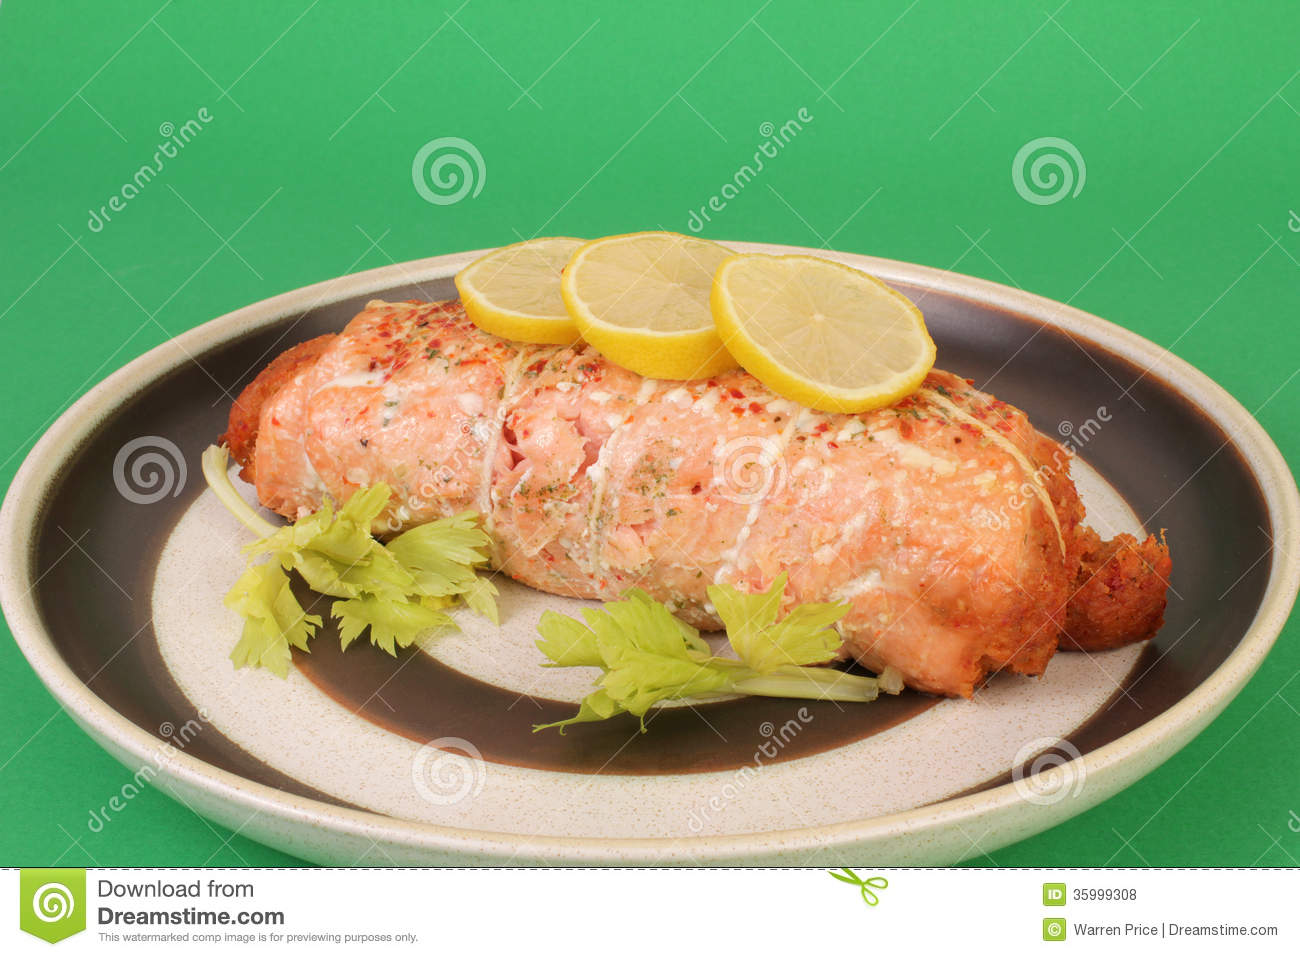 Lobster-stuffed Salmon Roll Royalty Free Stock Photos - Image: 35999308